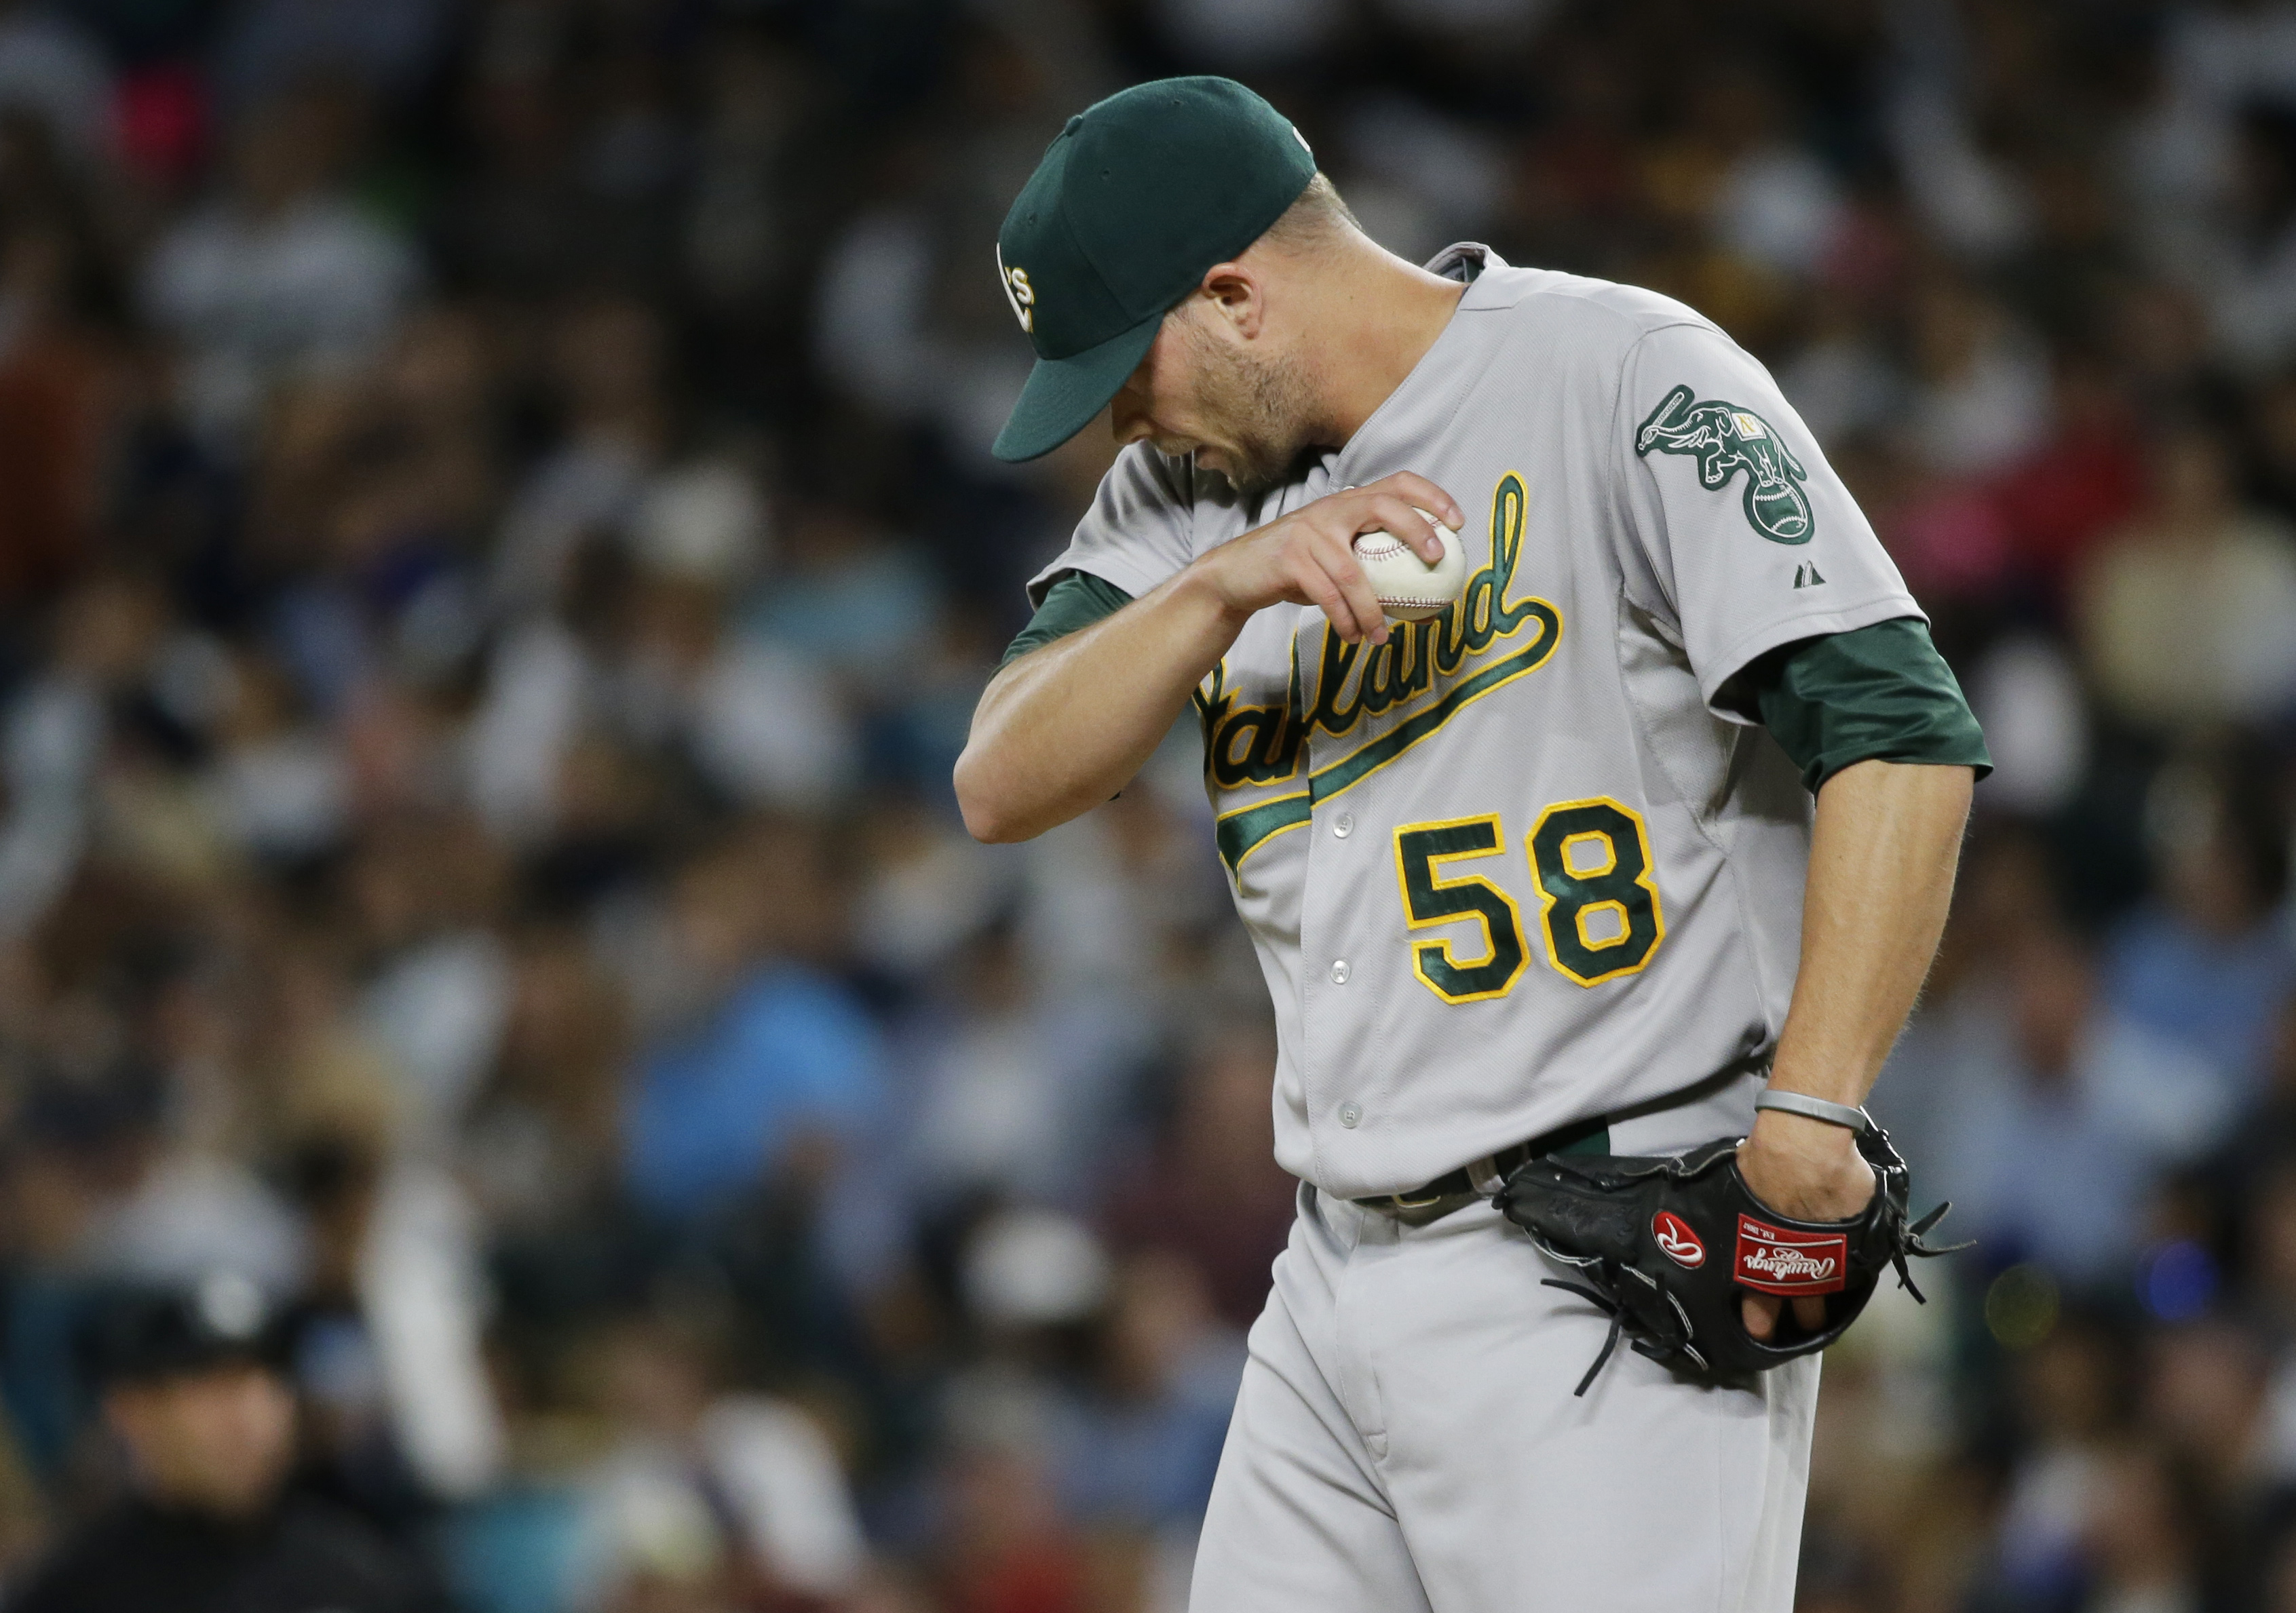 Oakland Athletics pitcher Evan Scribner wipes his forehead after giving up a three-run home run to Seattle Mariners' Franklin Gutierrez in the third inning of a baseball game, Monday, Aug. 24, 2015, in Seattle. (AP Photo/Ted S. Warren)